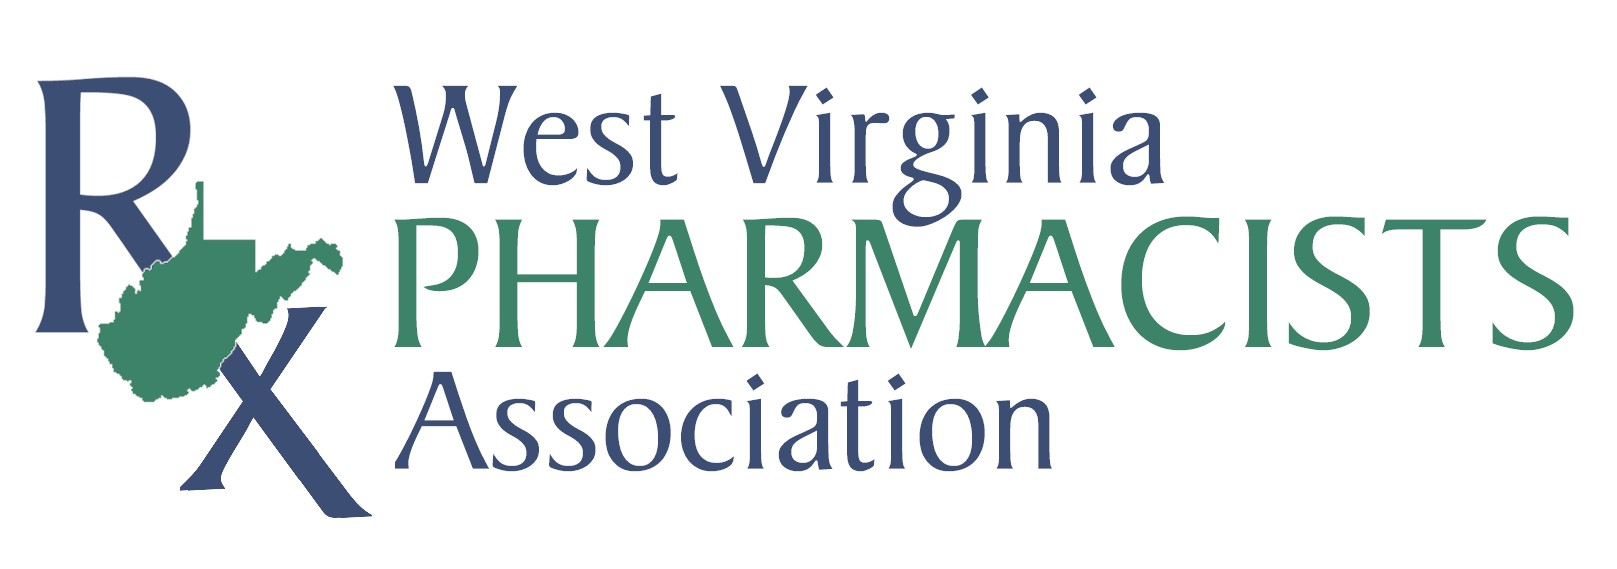 West Virginia Pharmacists Association